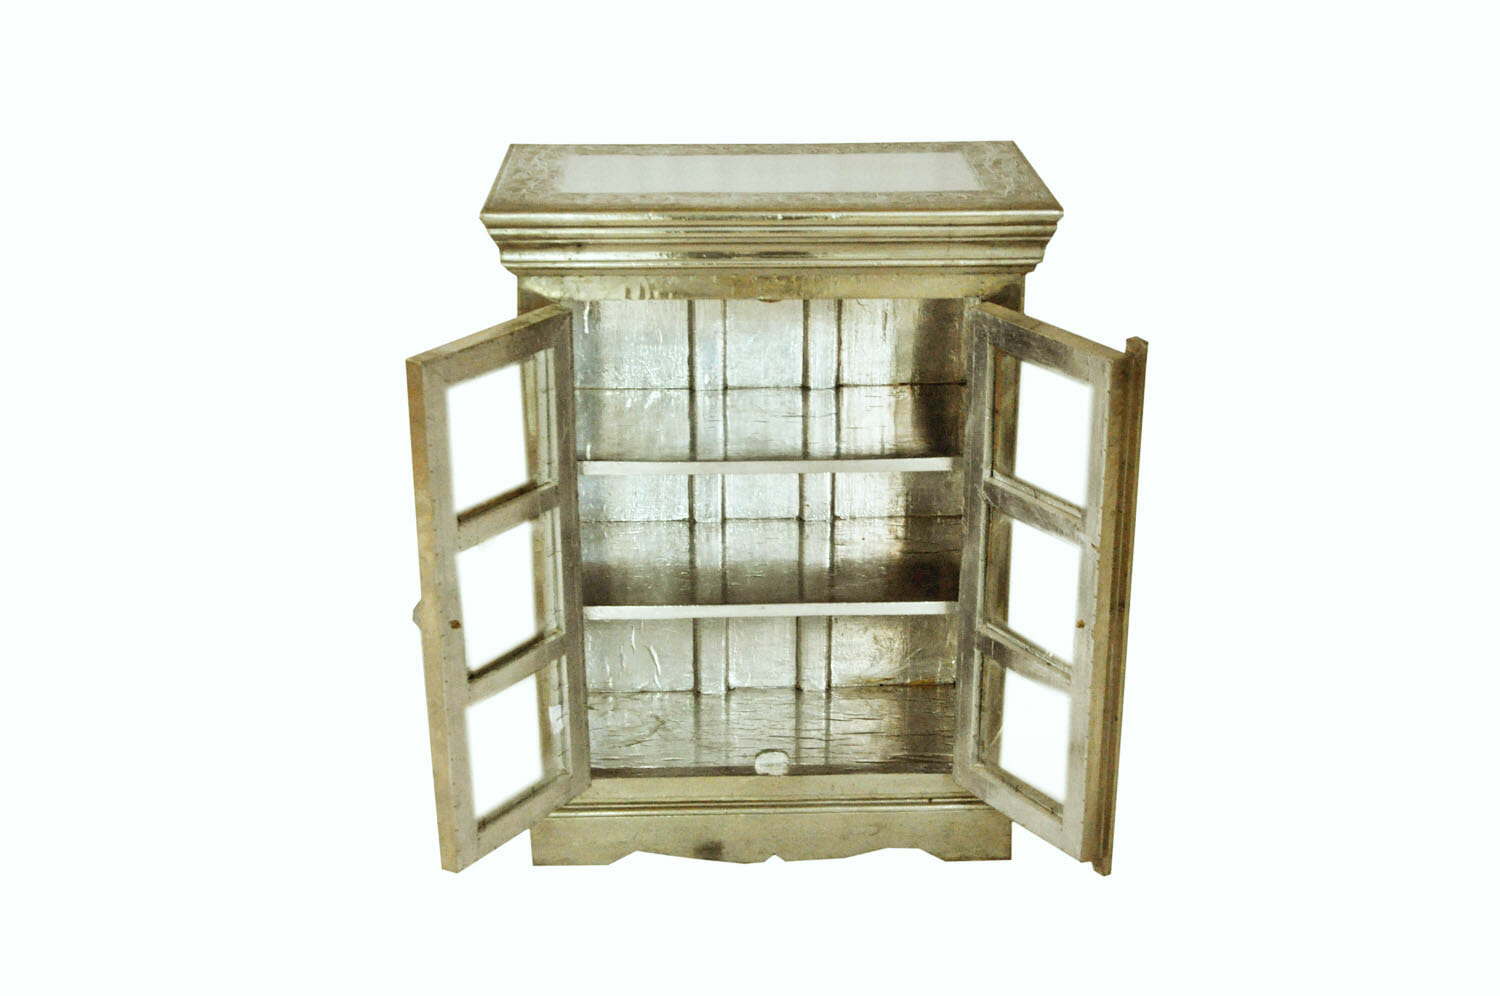 metal furniture furnishing done iris indian background white please donewhite glass cabinet